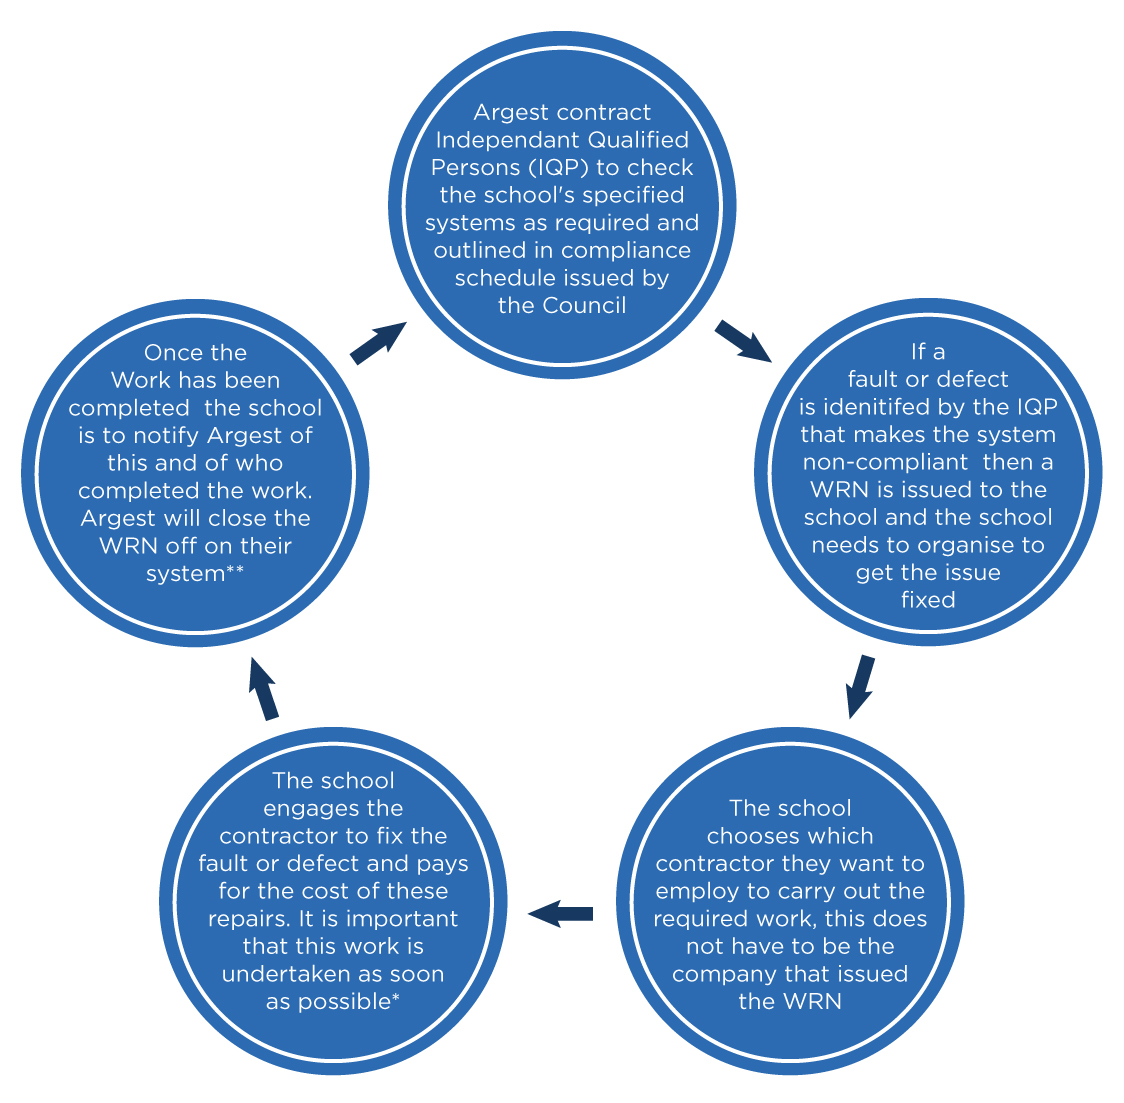 Simple flow diagram that outlines the WRN process for schools